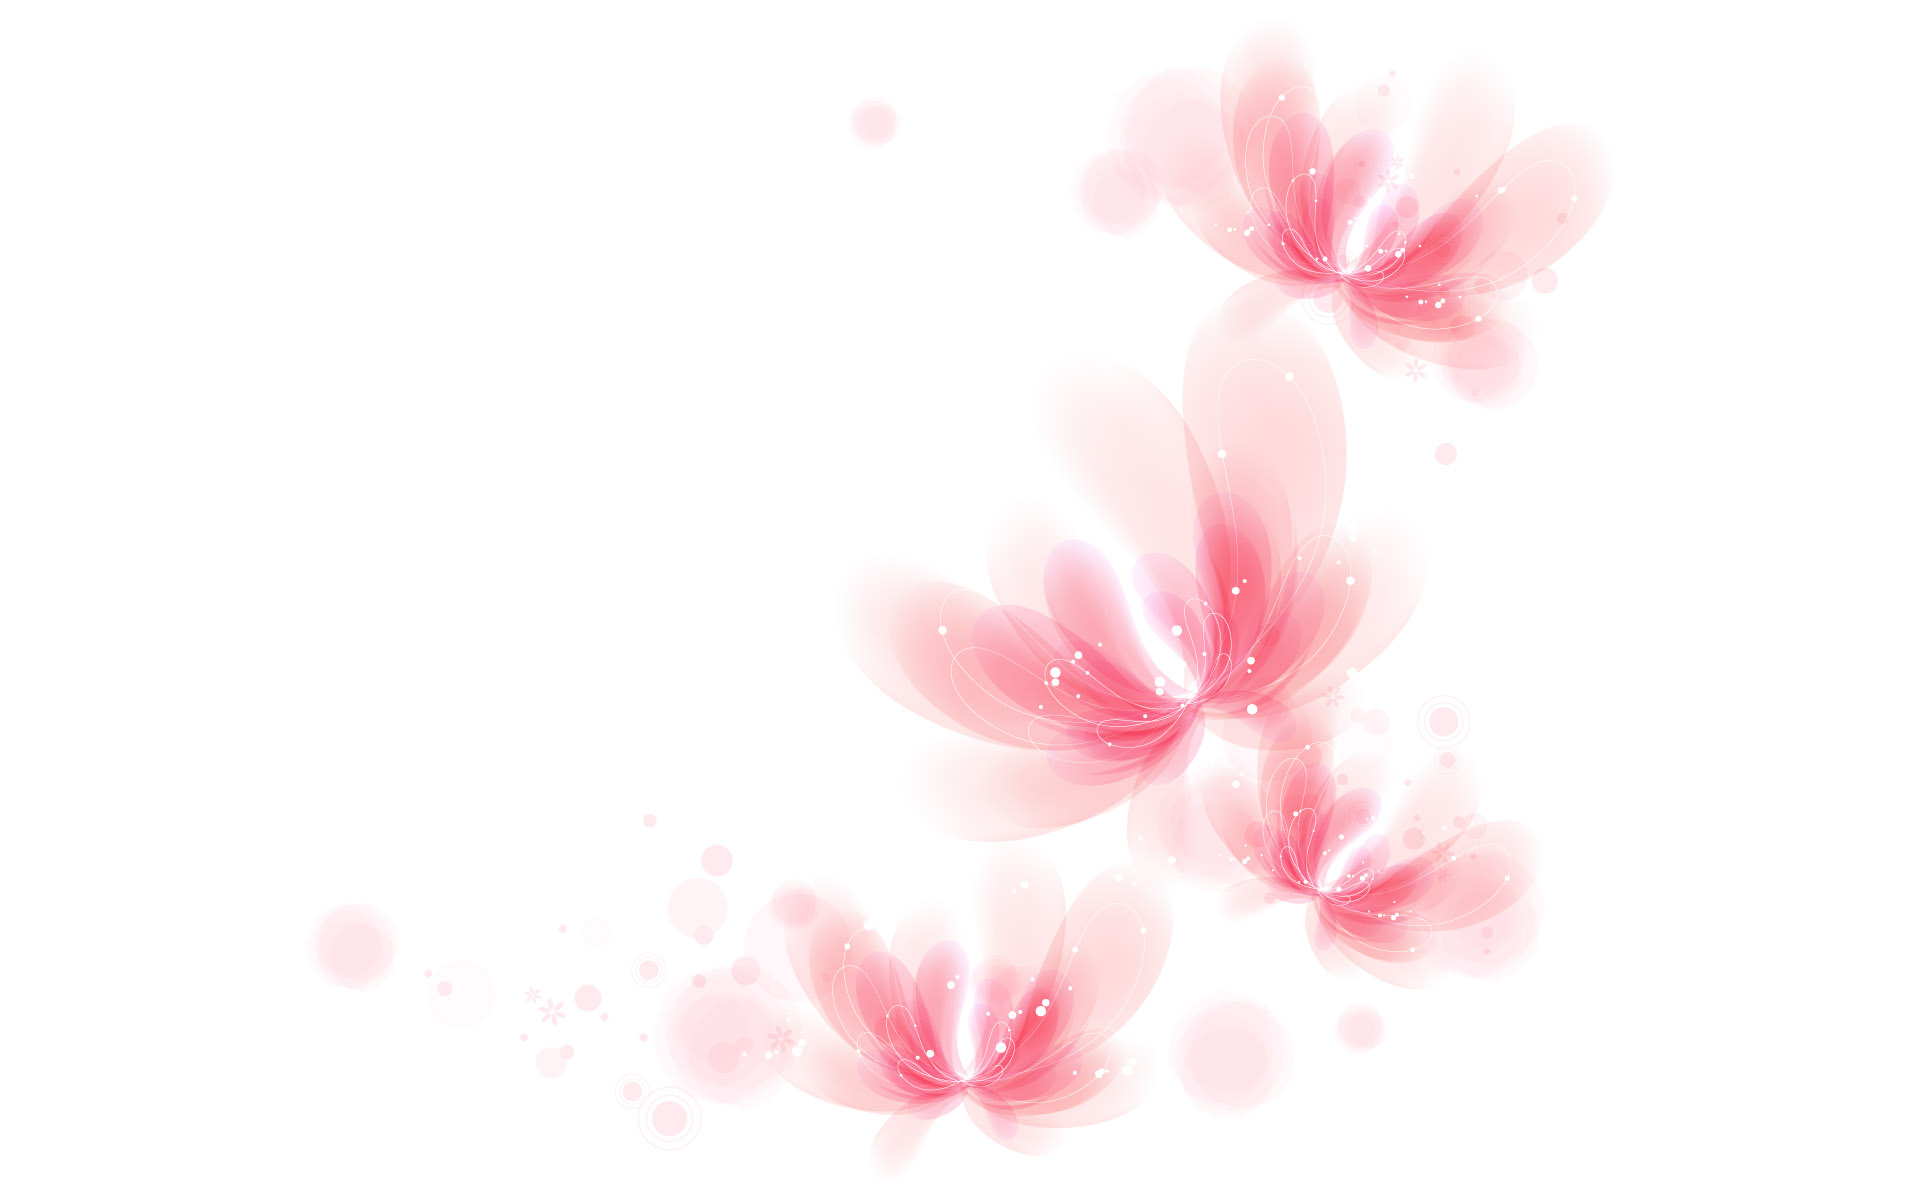 Background color 16400